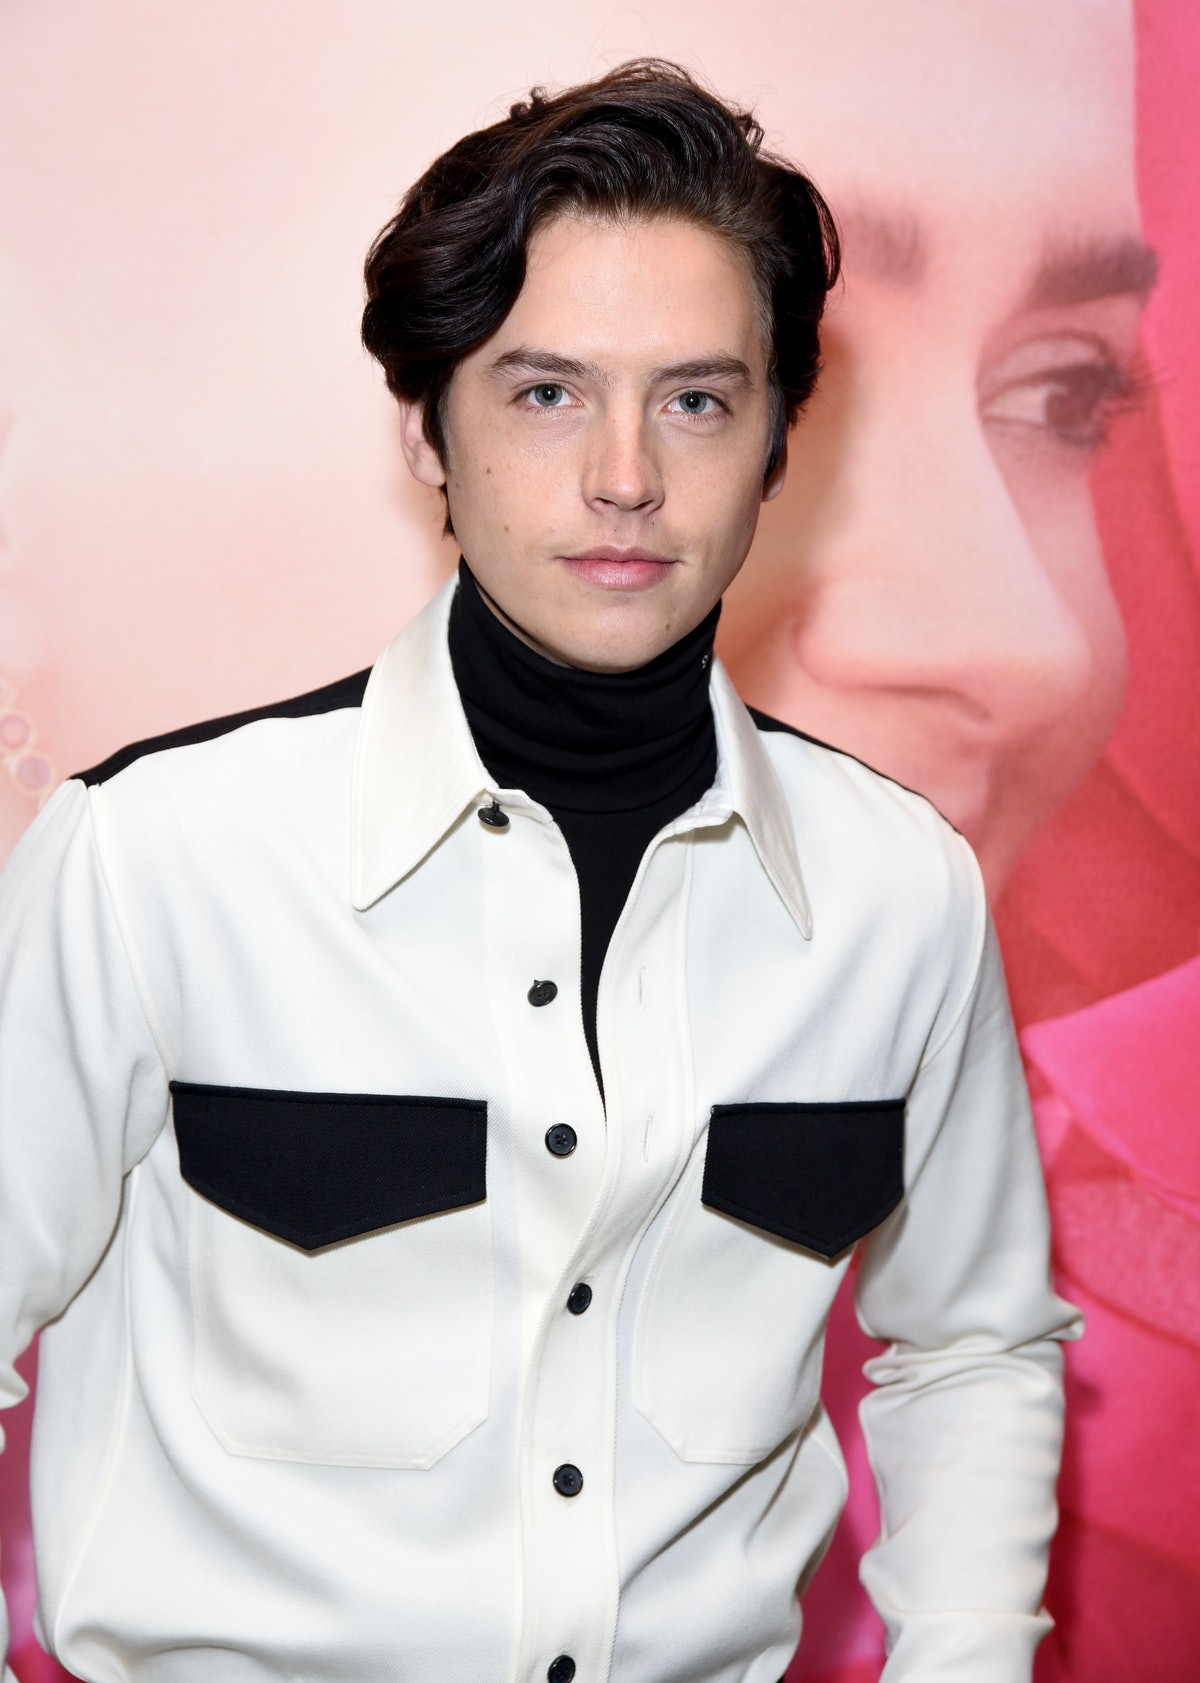 The 'Five Feet Apart' Trailer With Cole Sprouse Will Make You Feel Emotions You Never Knew You Had — VIDEO